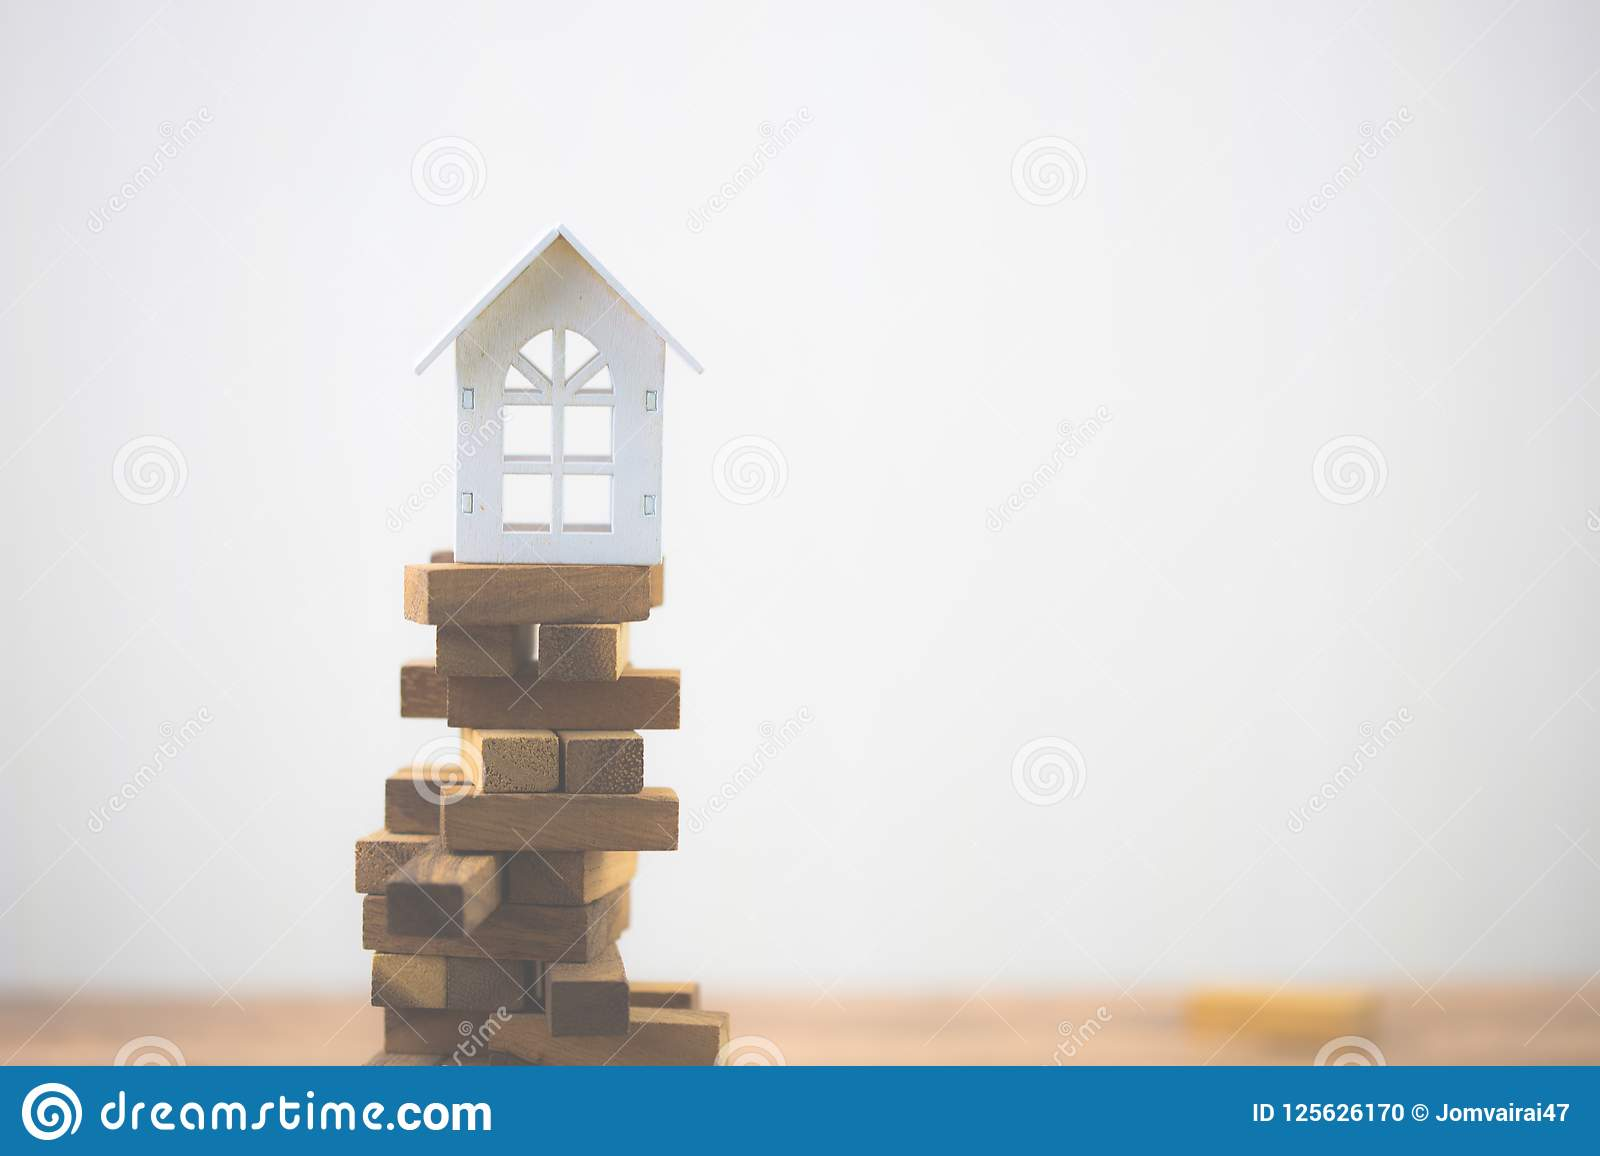 Model white house on wood block. Investment risk and uncertainty in the real estate housing market.